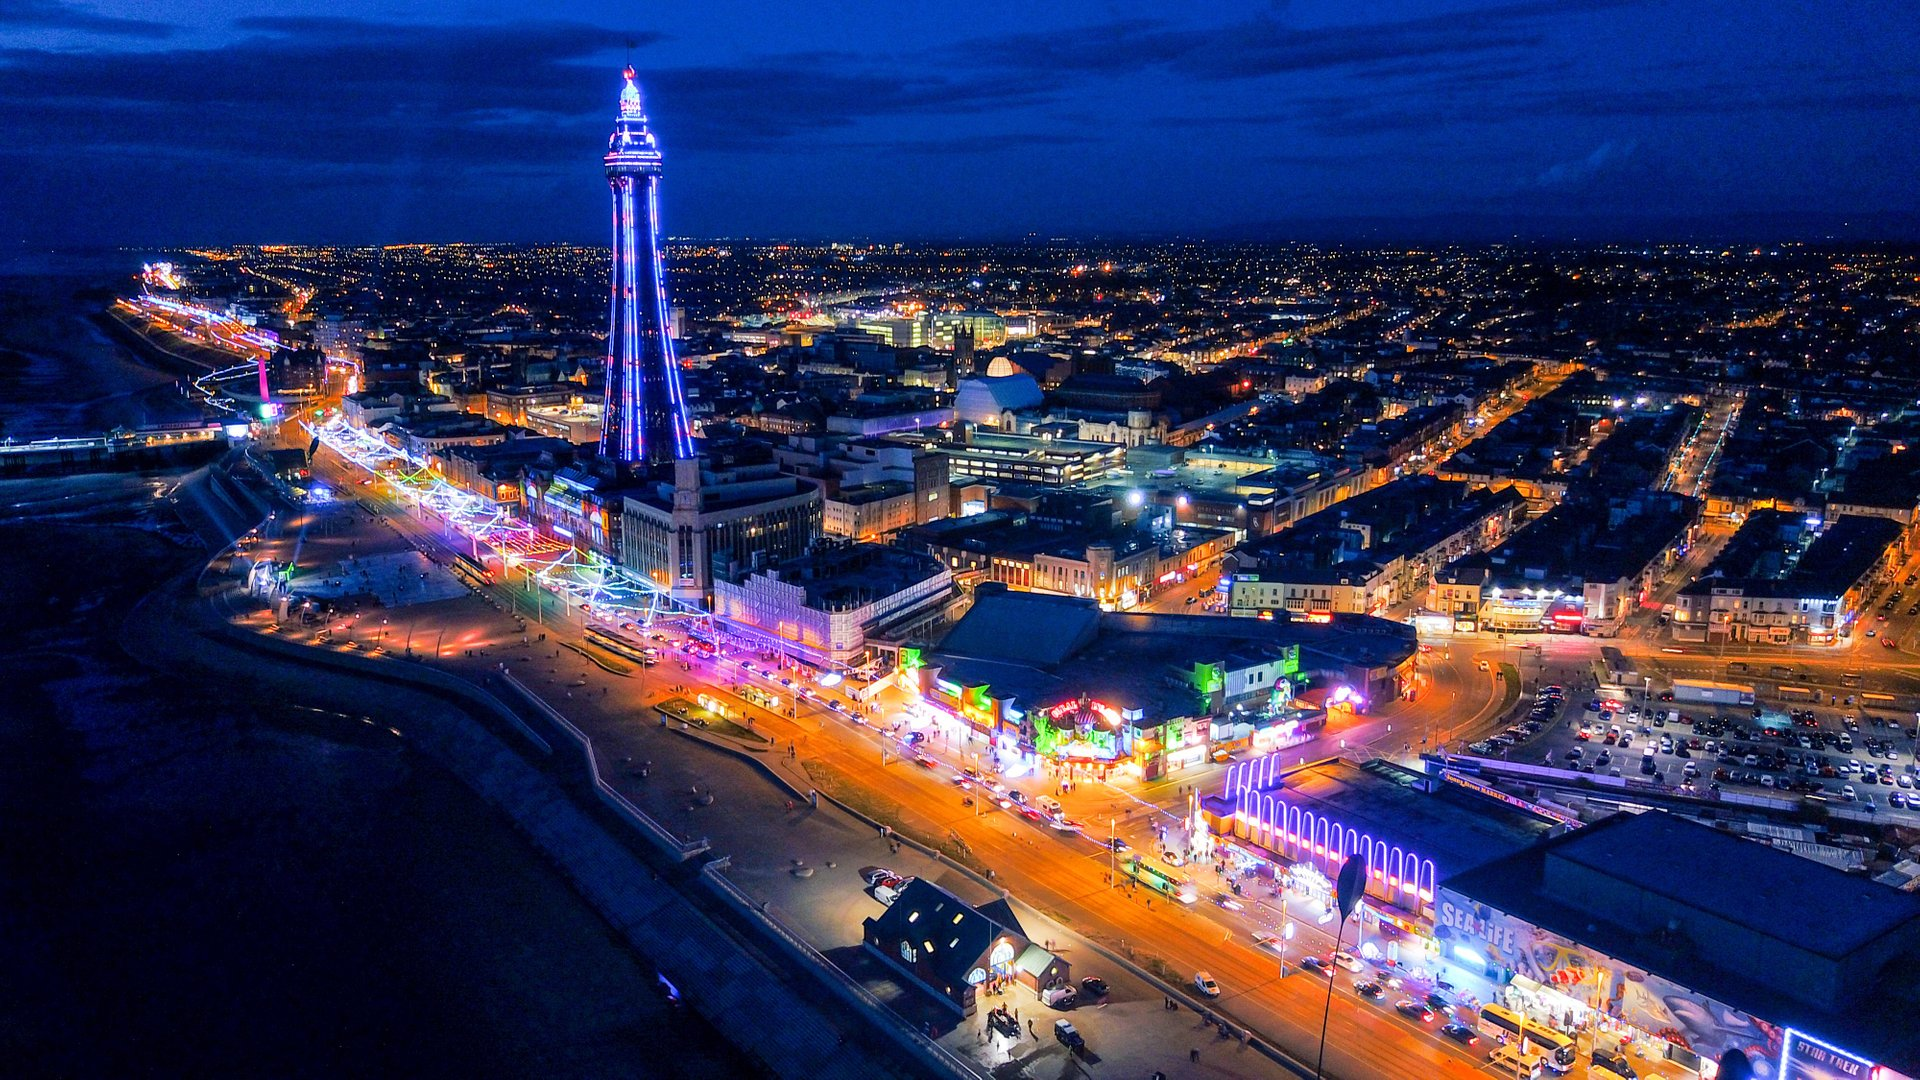 Blackpool Illuminations in England 2020 - Best Time